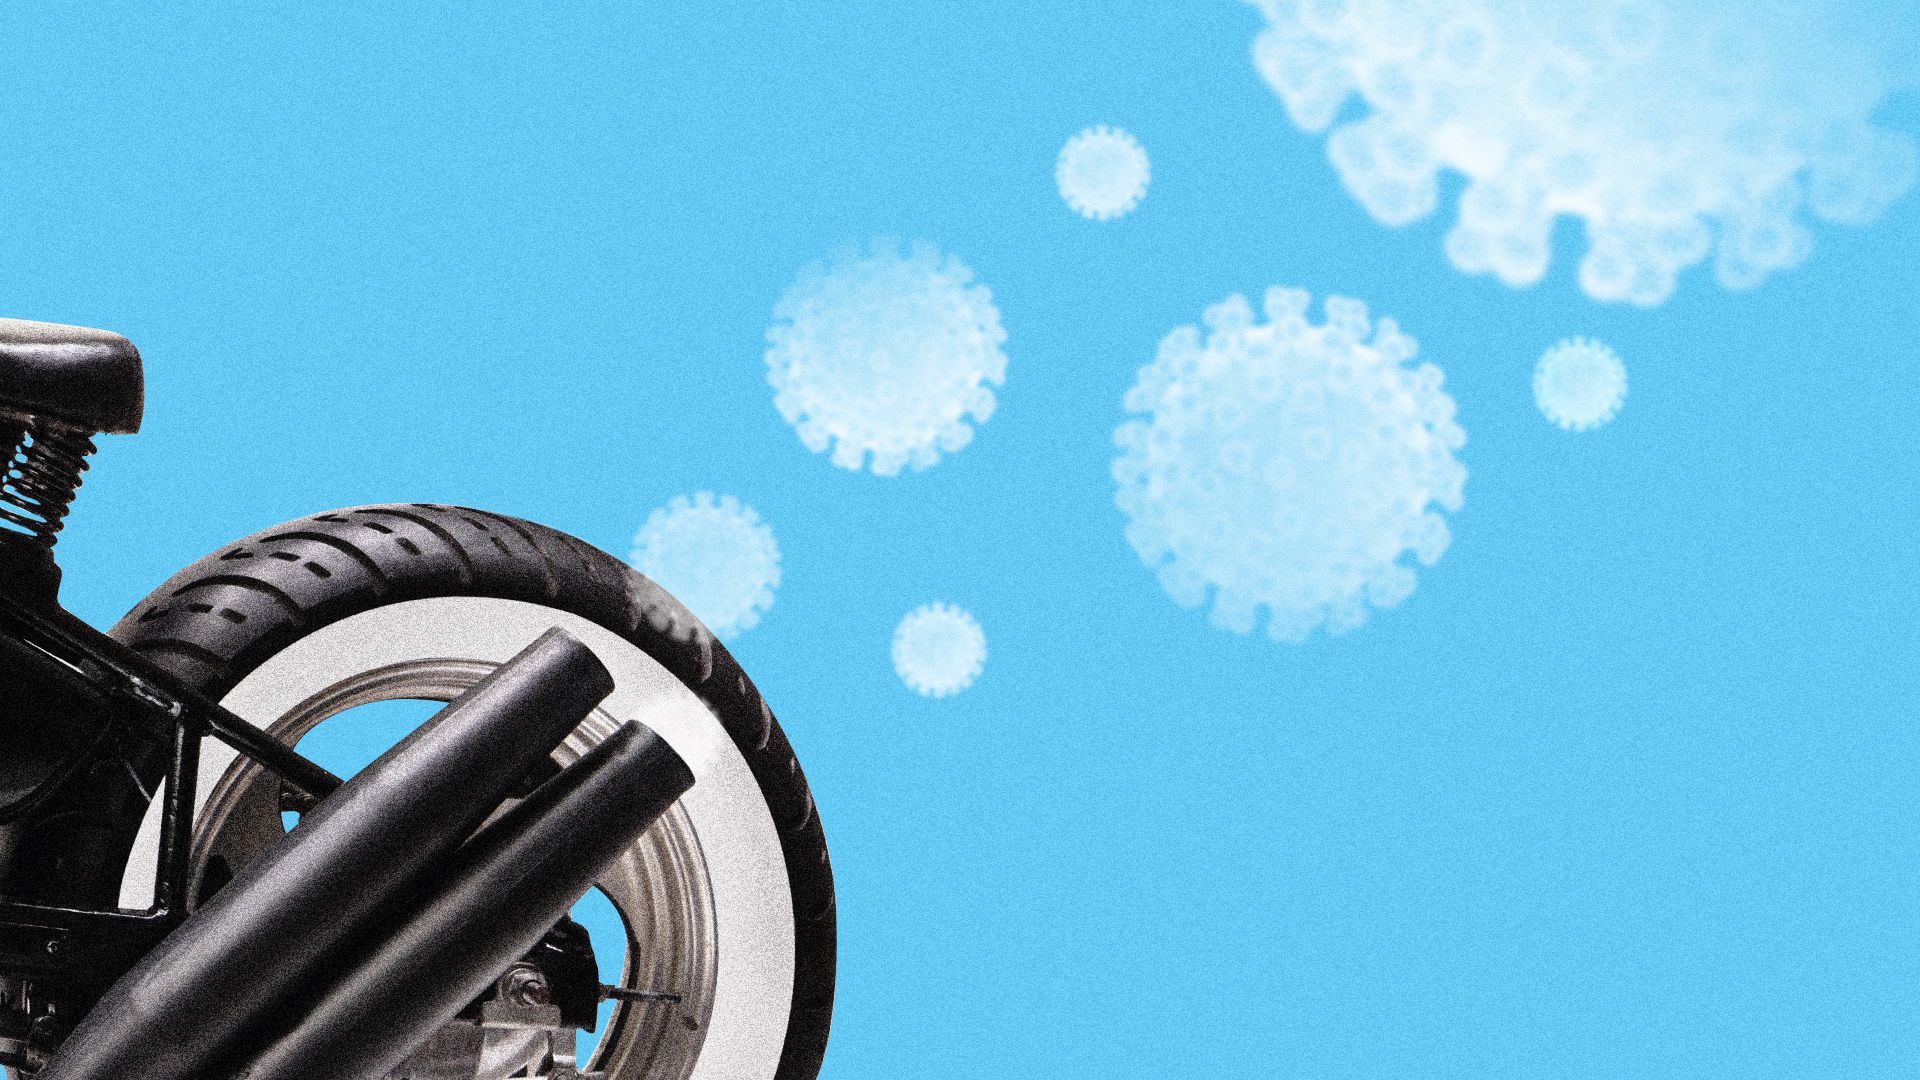 Illustration of a motorcycle exhaust fork with plumes of coronavirus exhaust coming out and dissipating in the air.